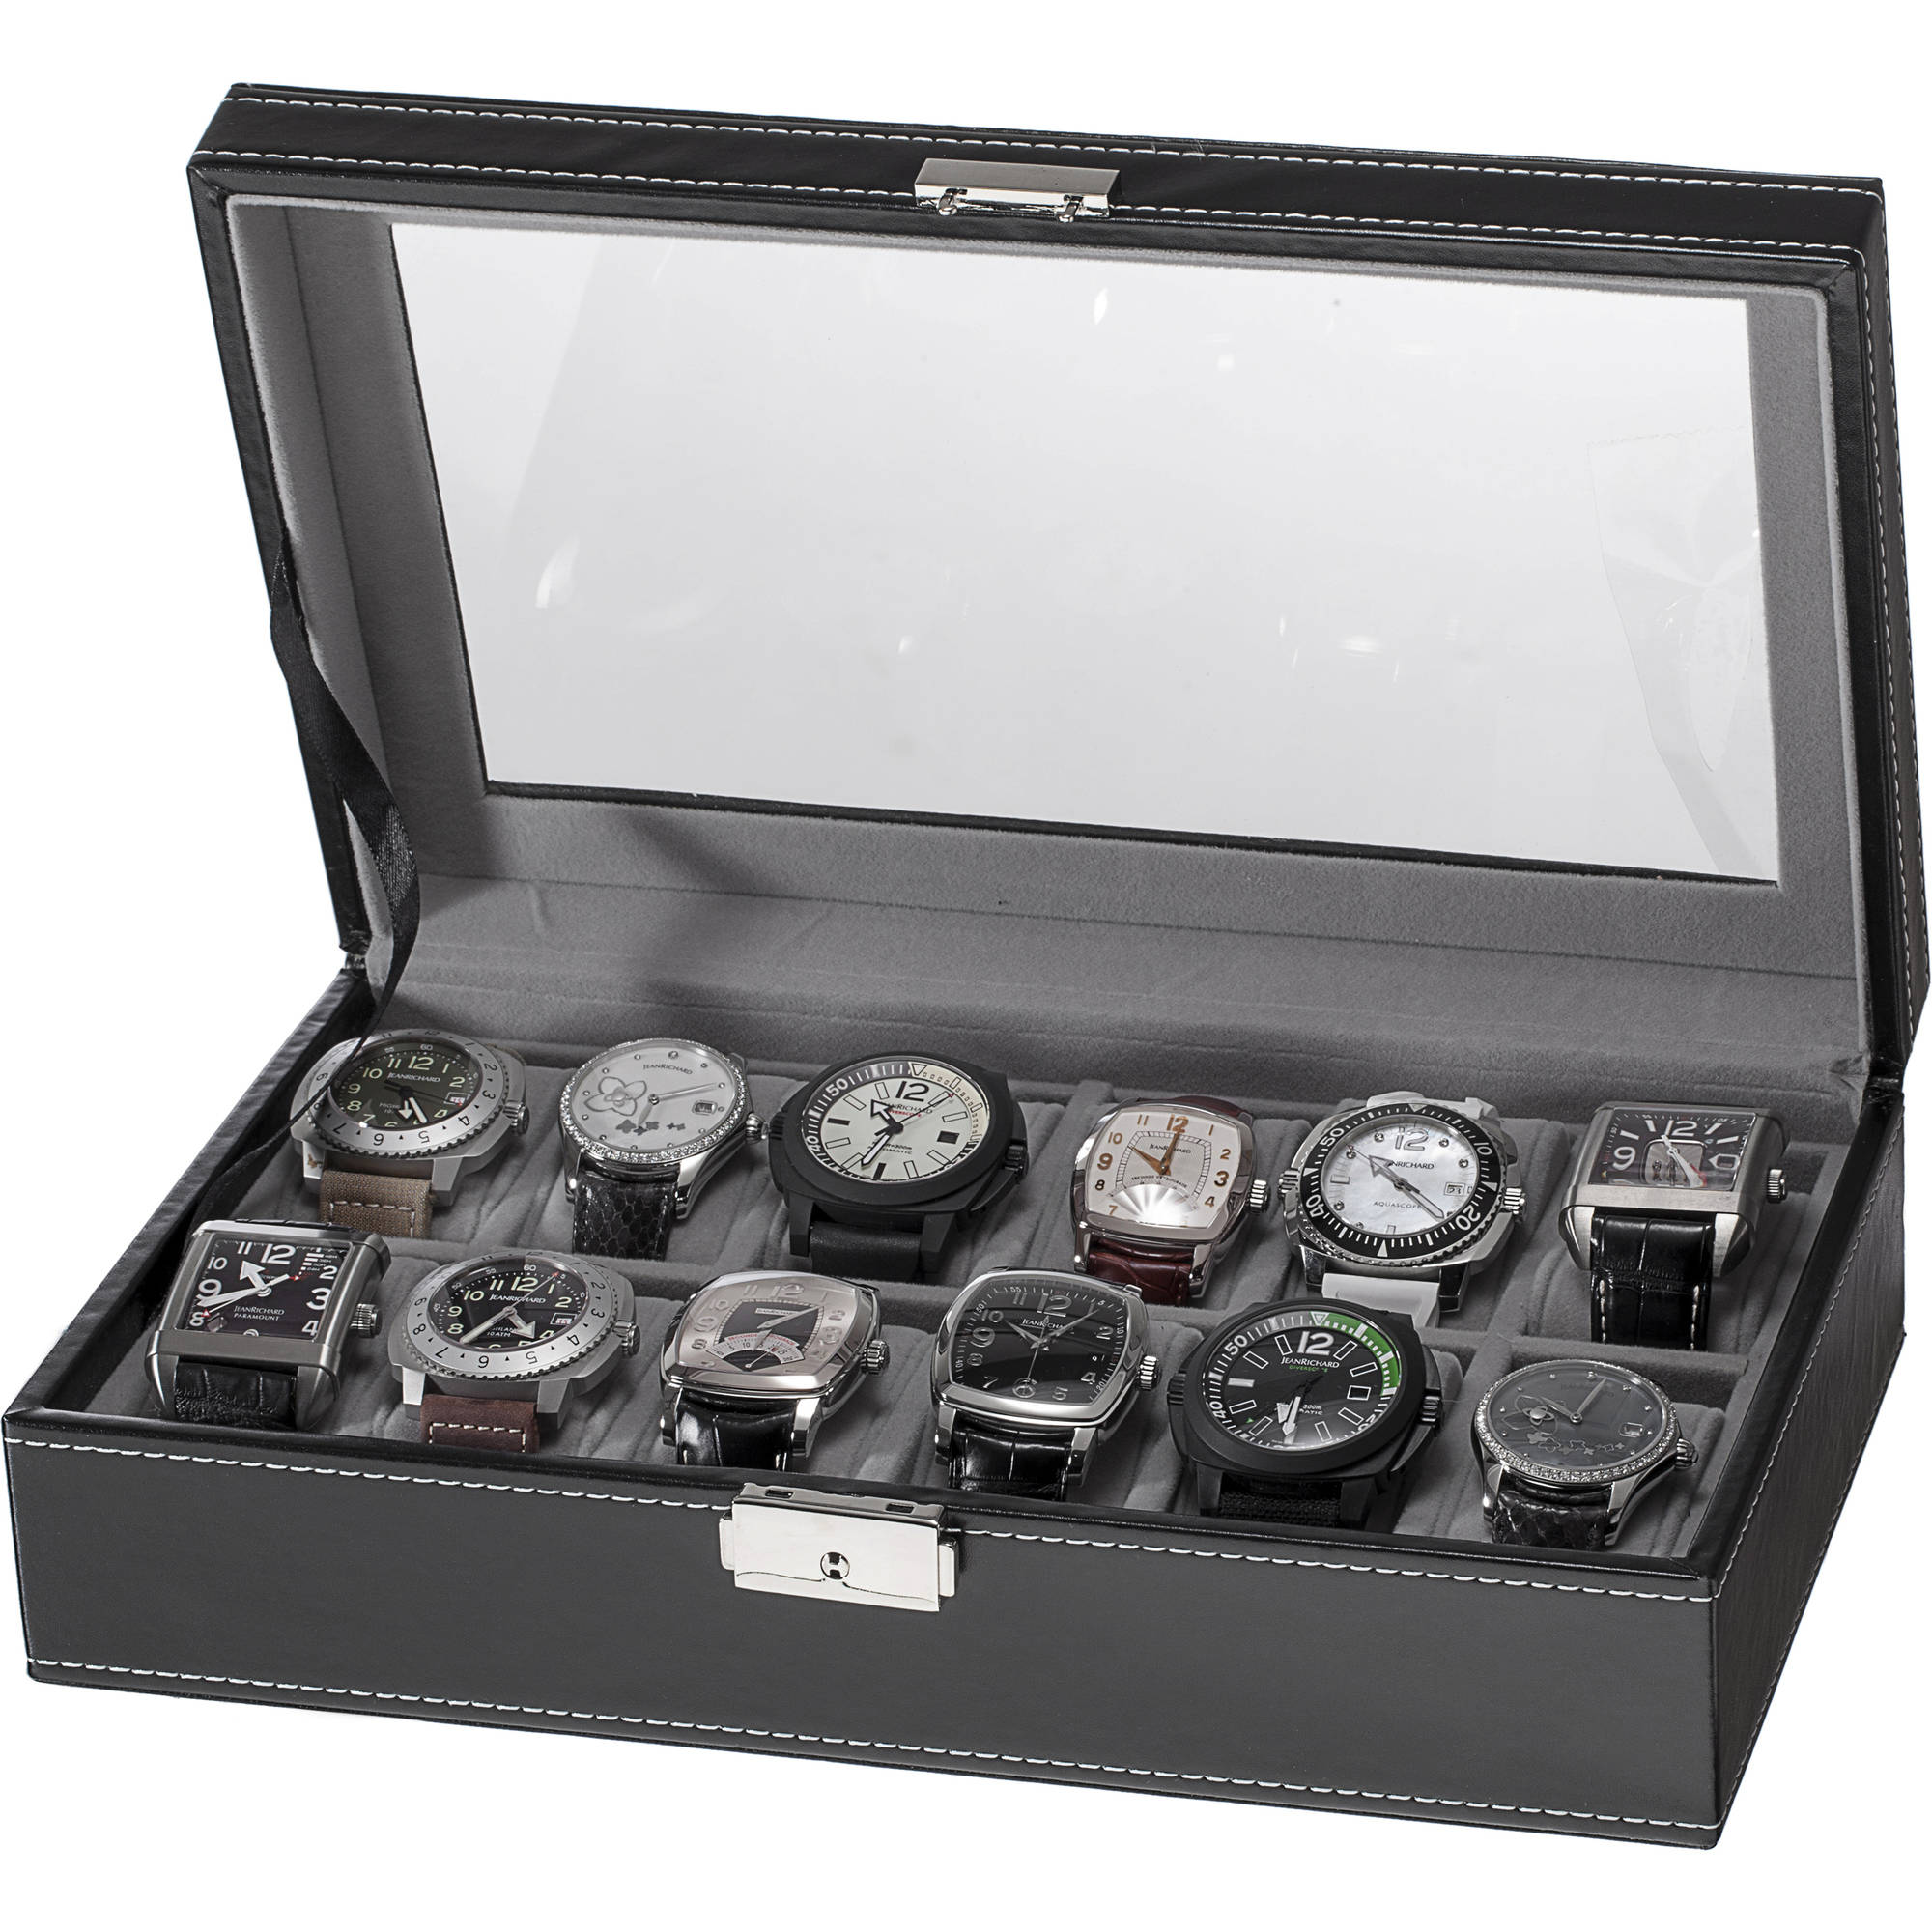 12-Slot Watch Box, Black